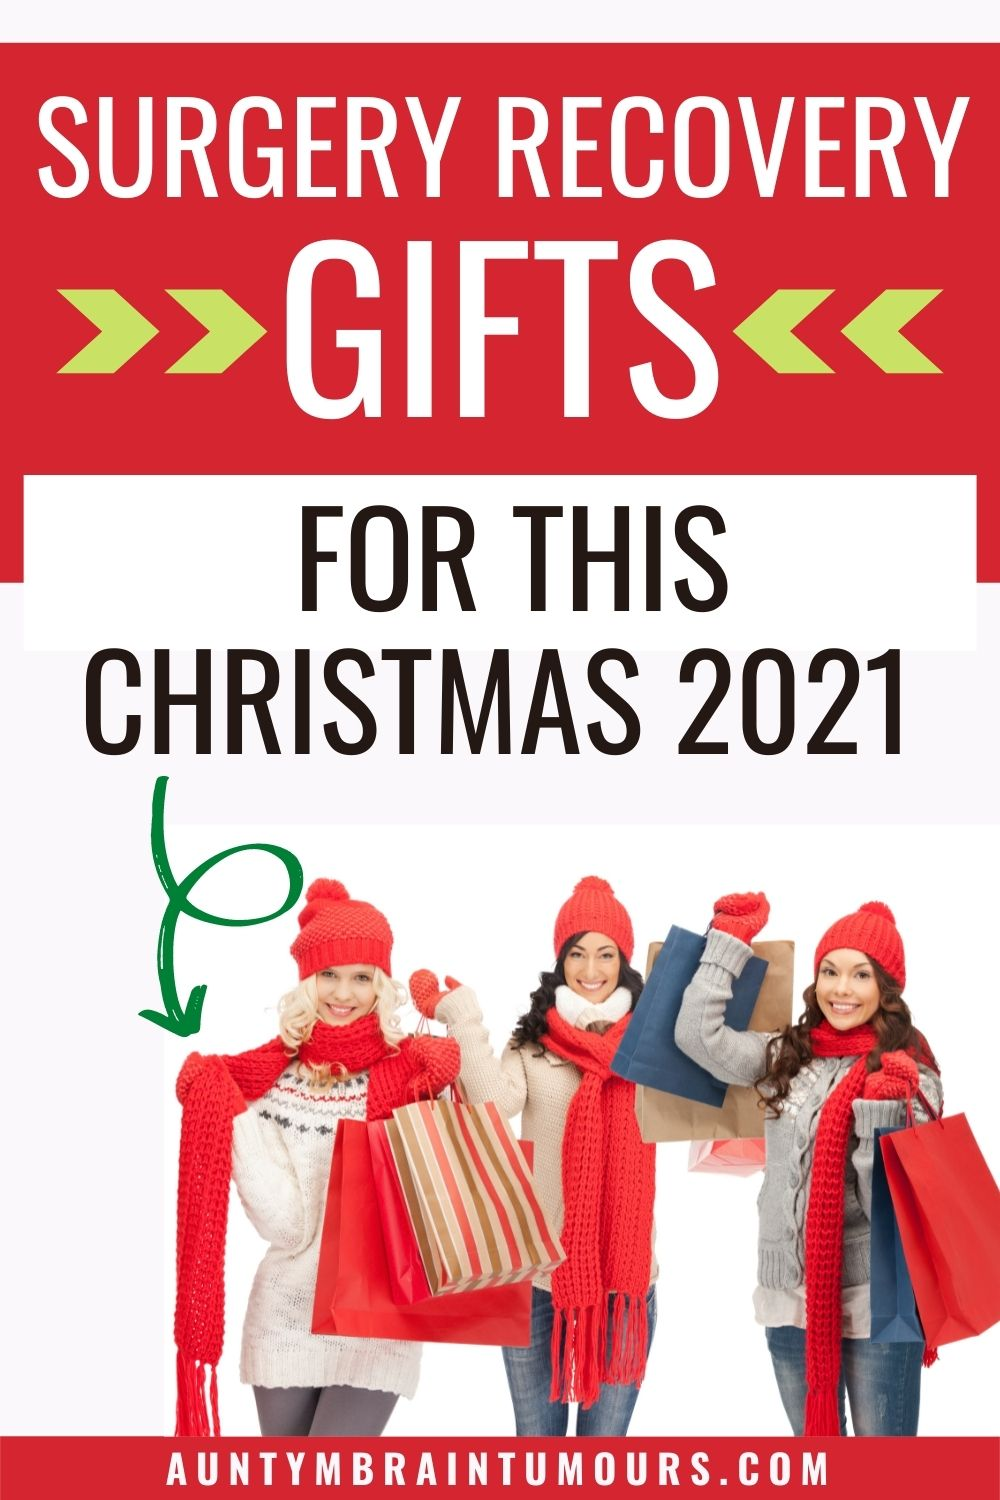 Surgery Recovery Gifts For This Christmas 2021